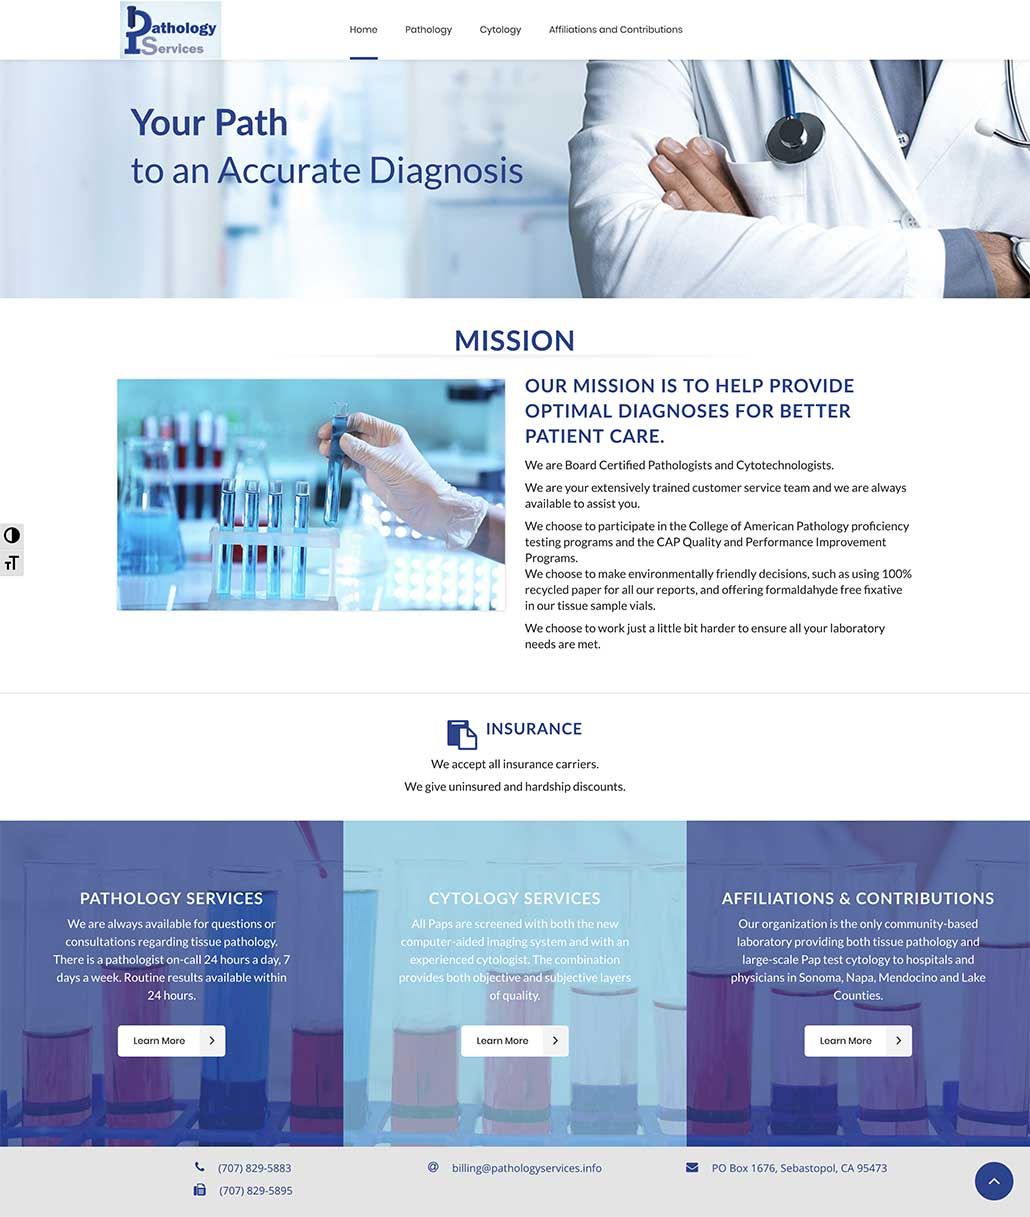 Pathology Services - Your Path to an Accurate Diagnosis